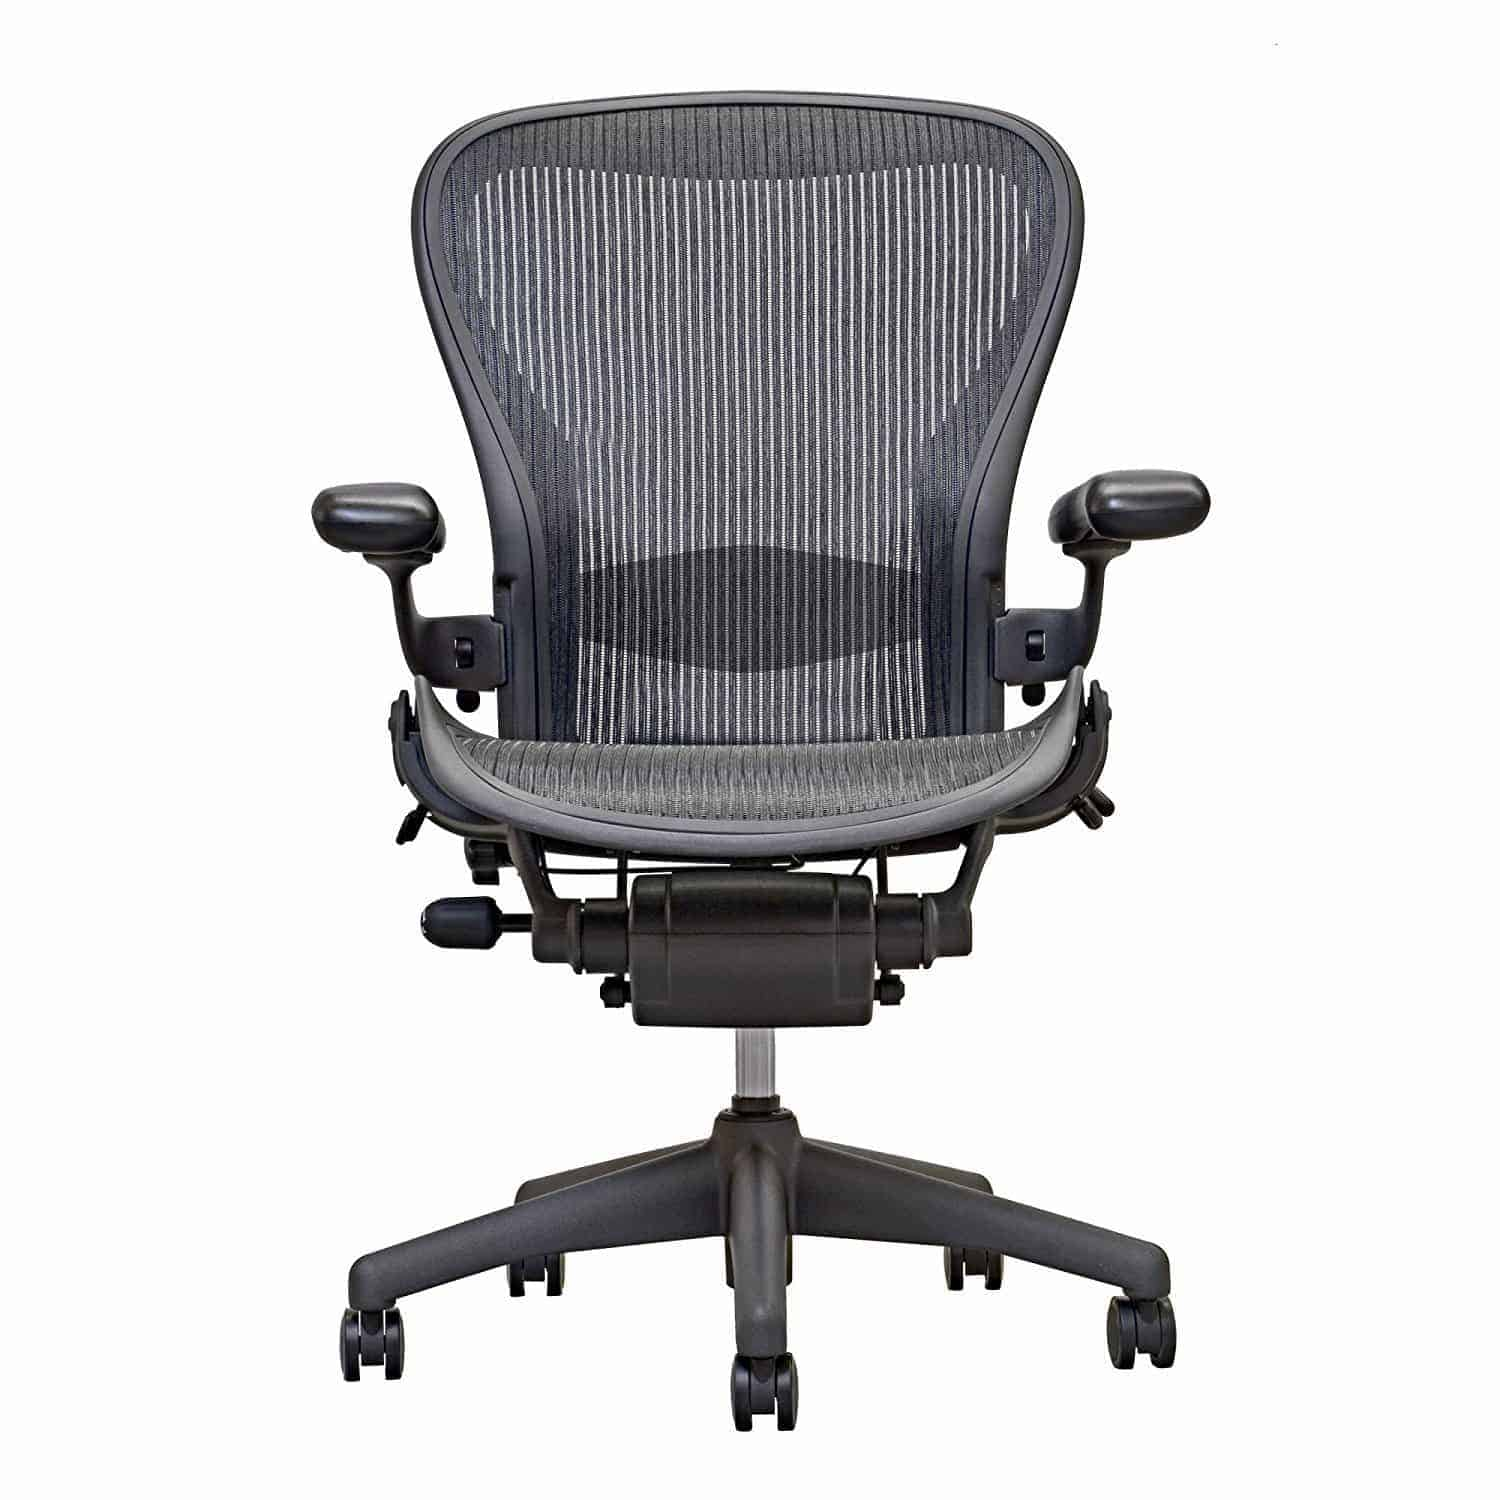 Gaiming Chair Best Gaming Chairs 2019 Don 39t Buy Before Reading This